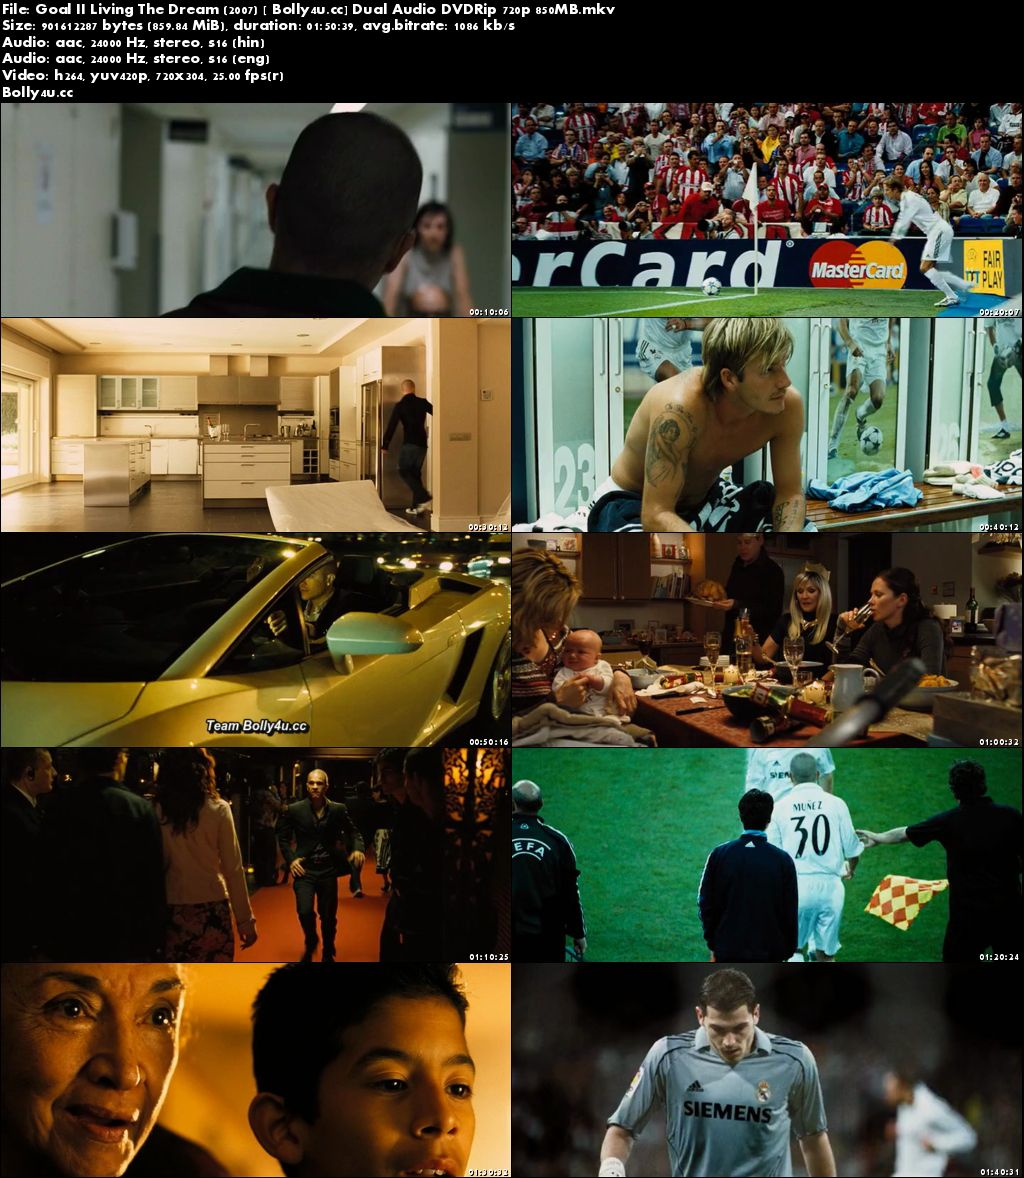 Goal II Living The Dream 2007 DVDRip 850MB Hindi Dual Audio x264 Download